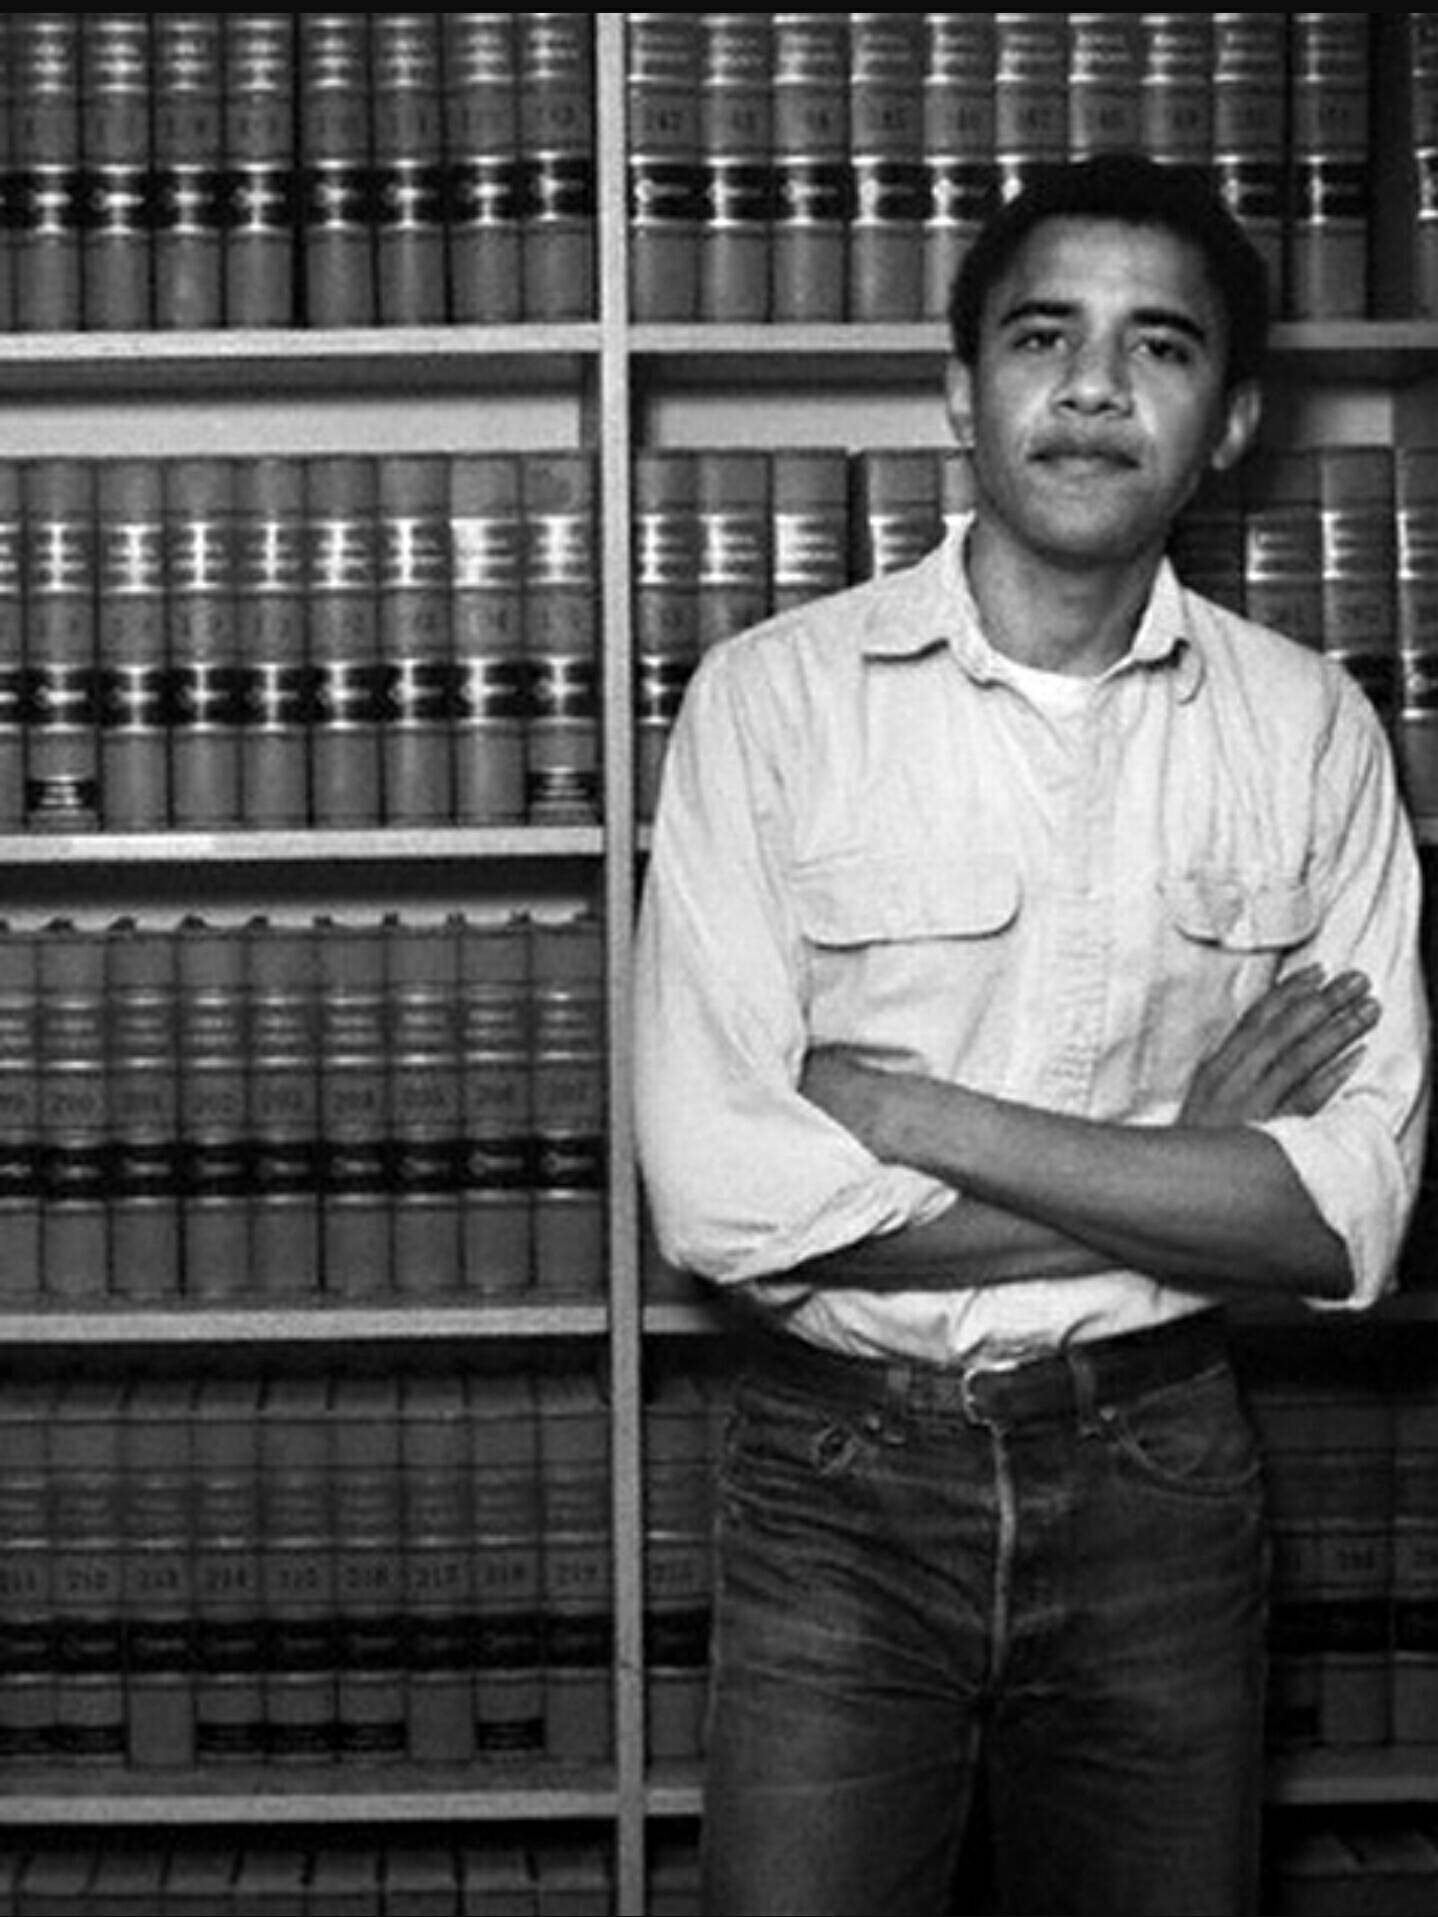 #OnThisDay in 1990, Barack Obama became the first black man named as president of the Harvard Law Review. #BlackHistoryMonth https://t.co/K5nfd6inh2